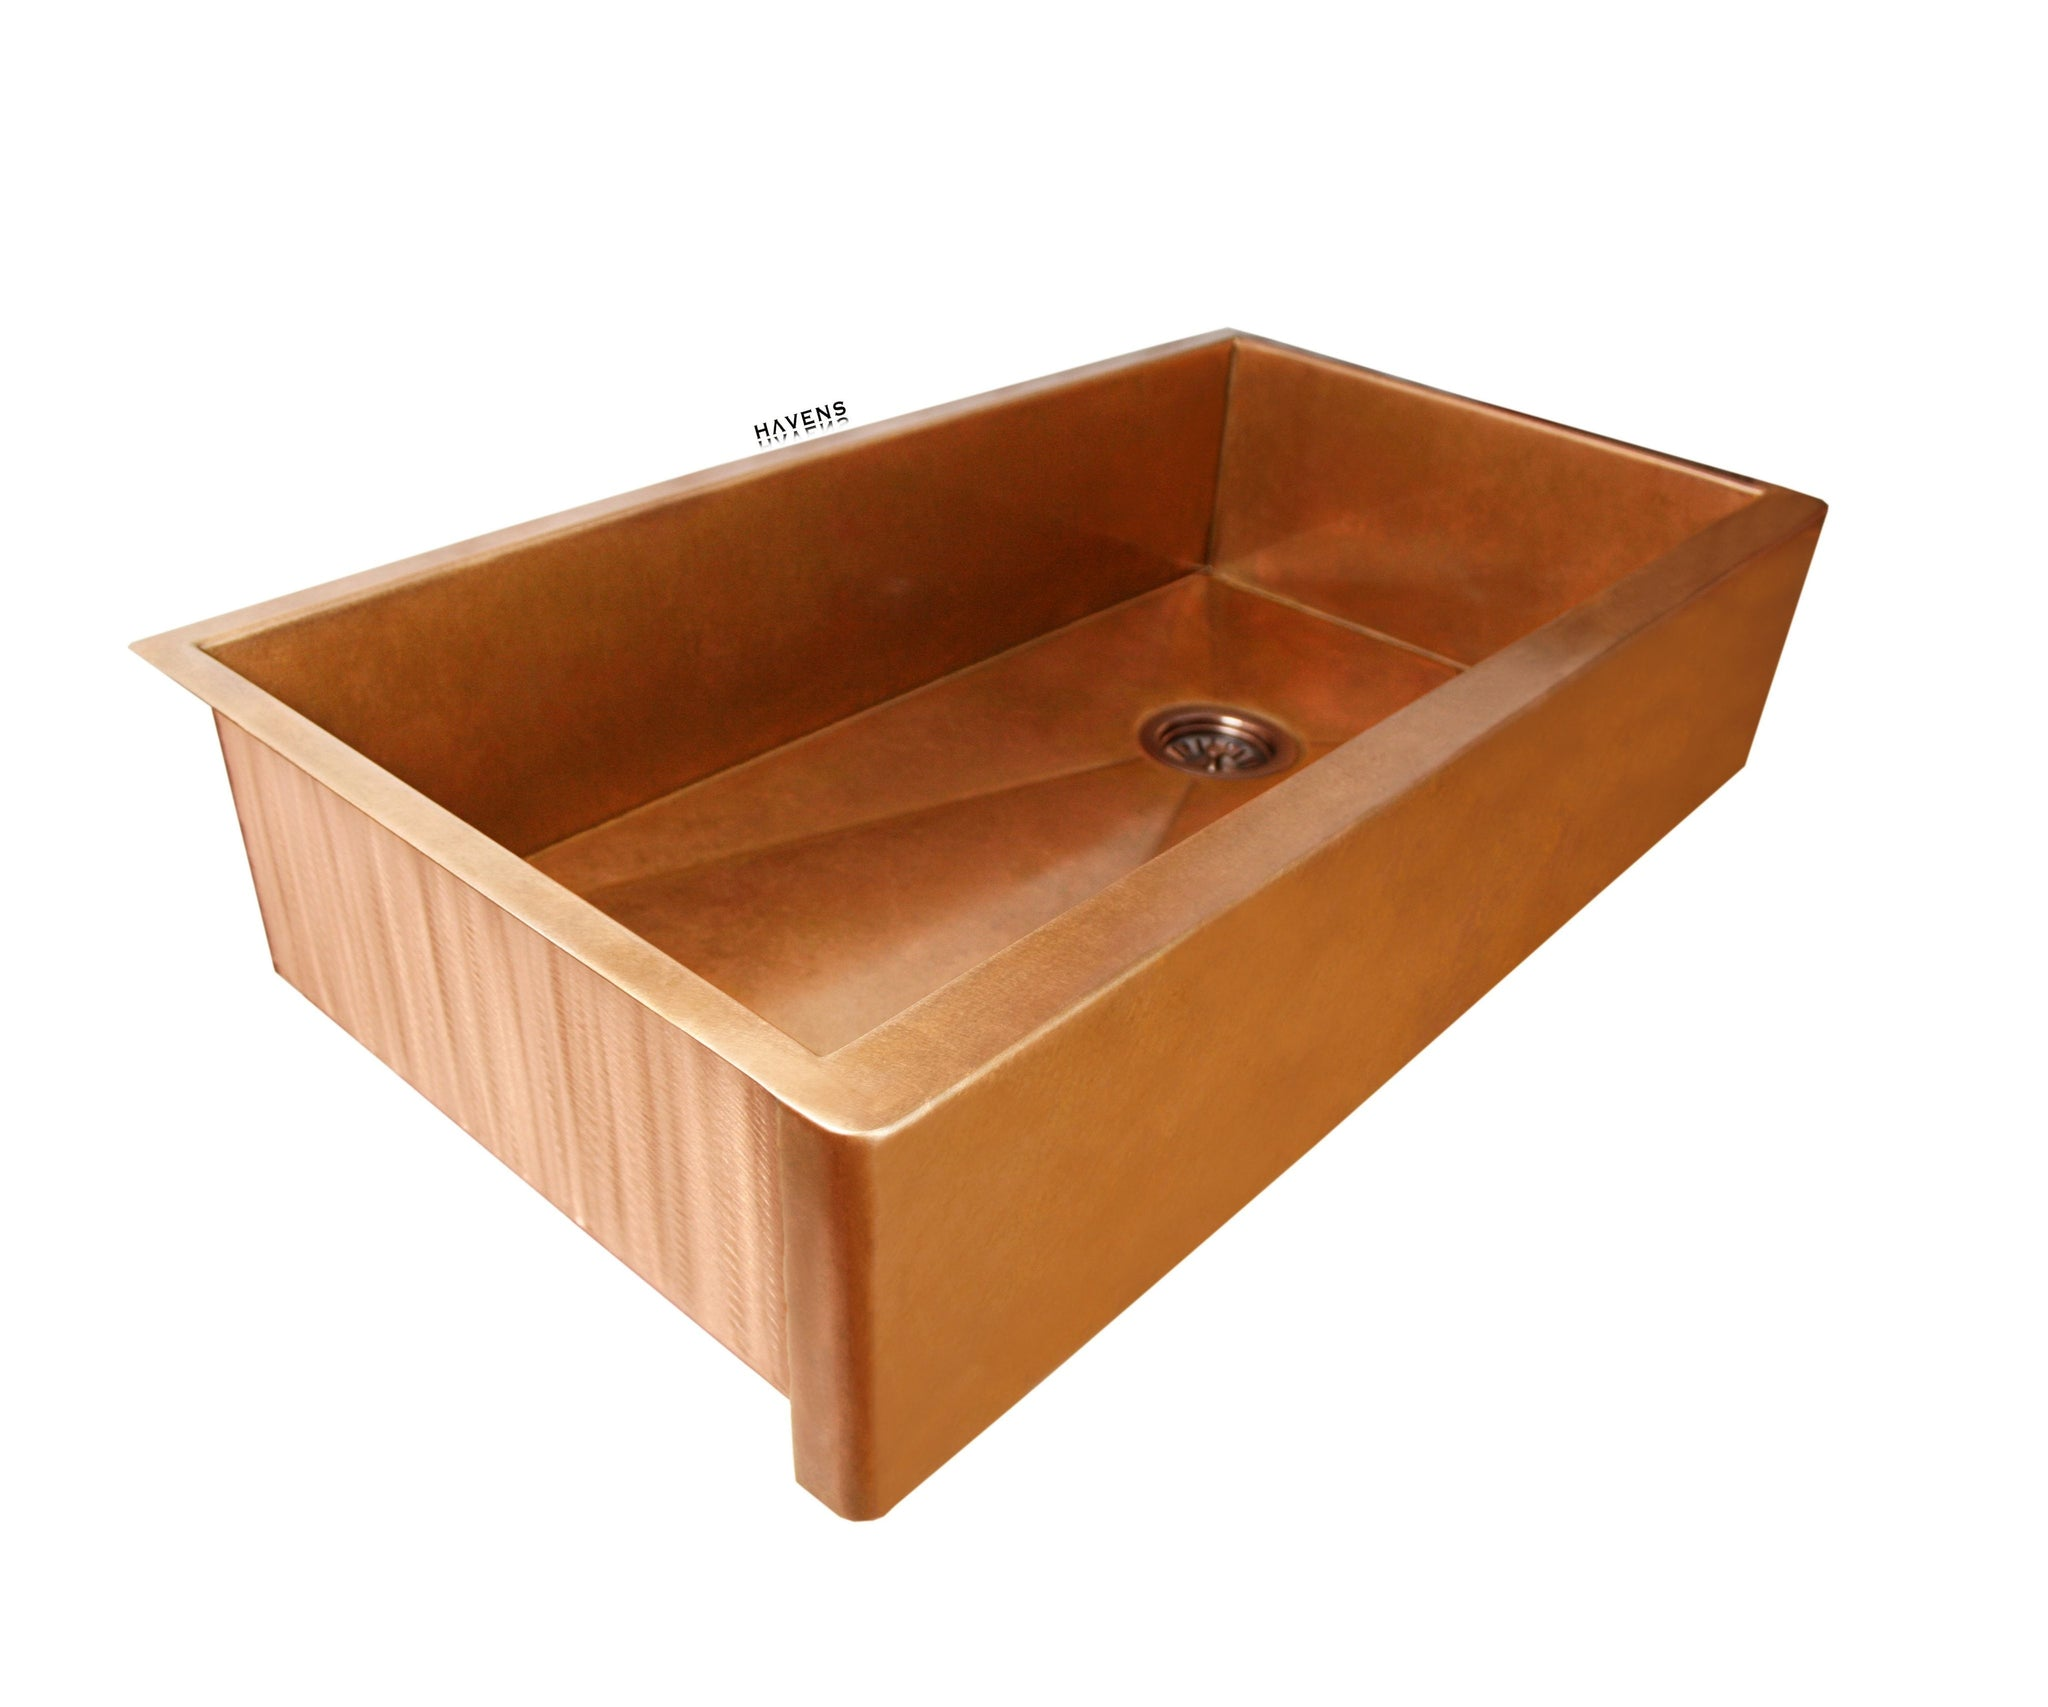 Single bowl 33 inch farmhouse copper kitchen sink installs as an undermount.